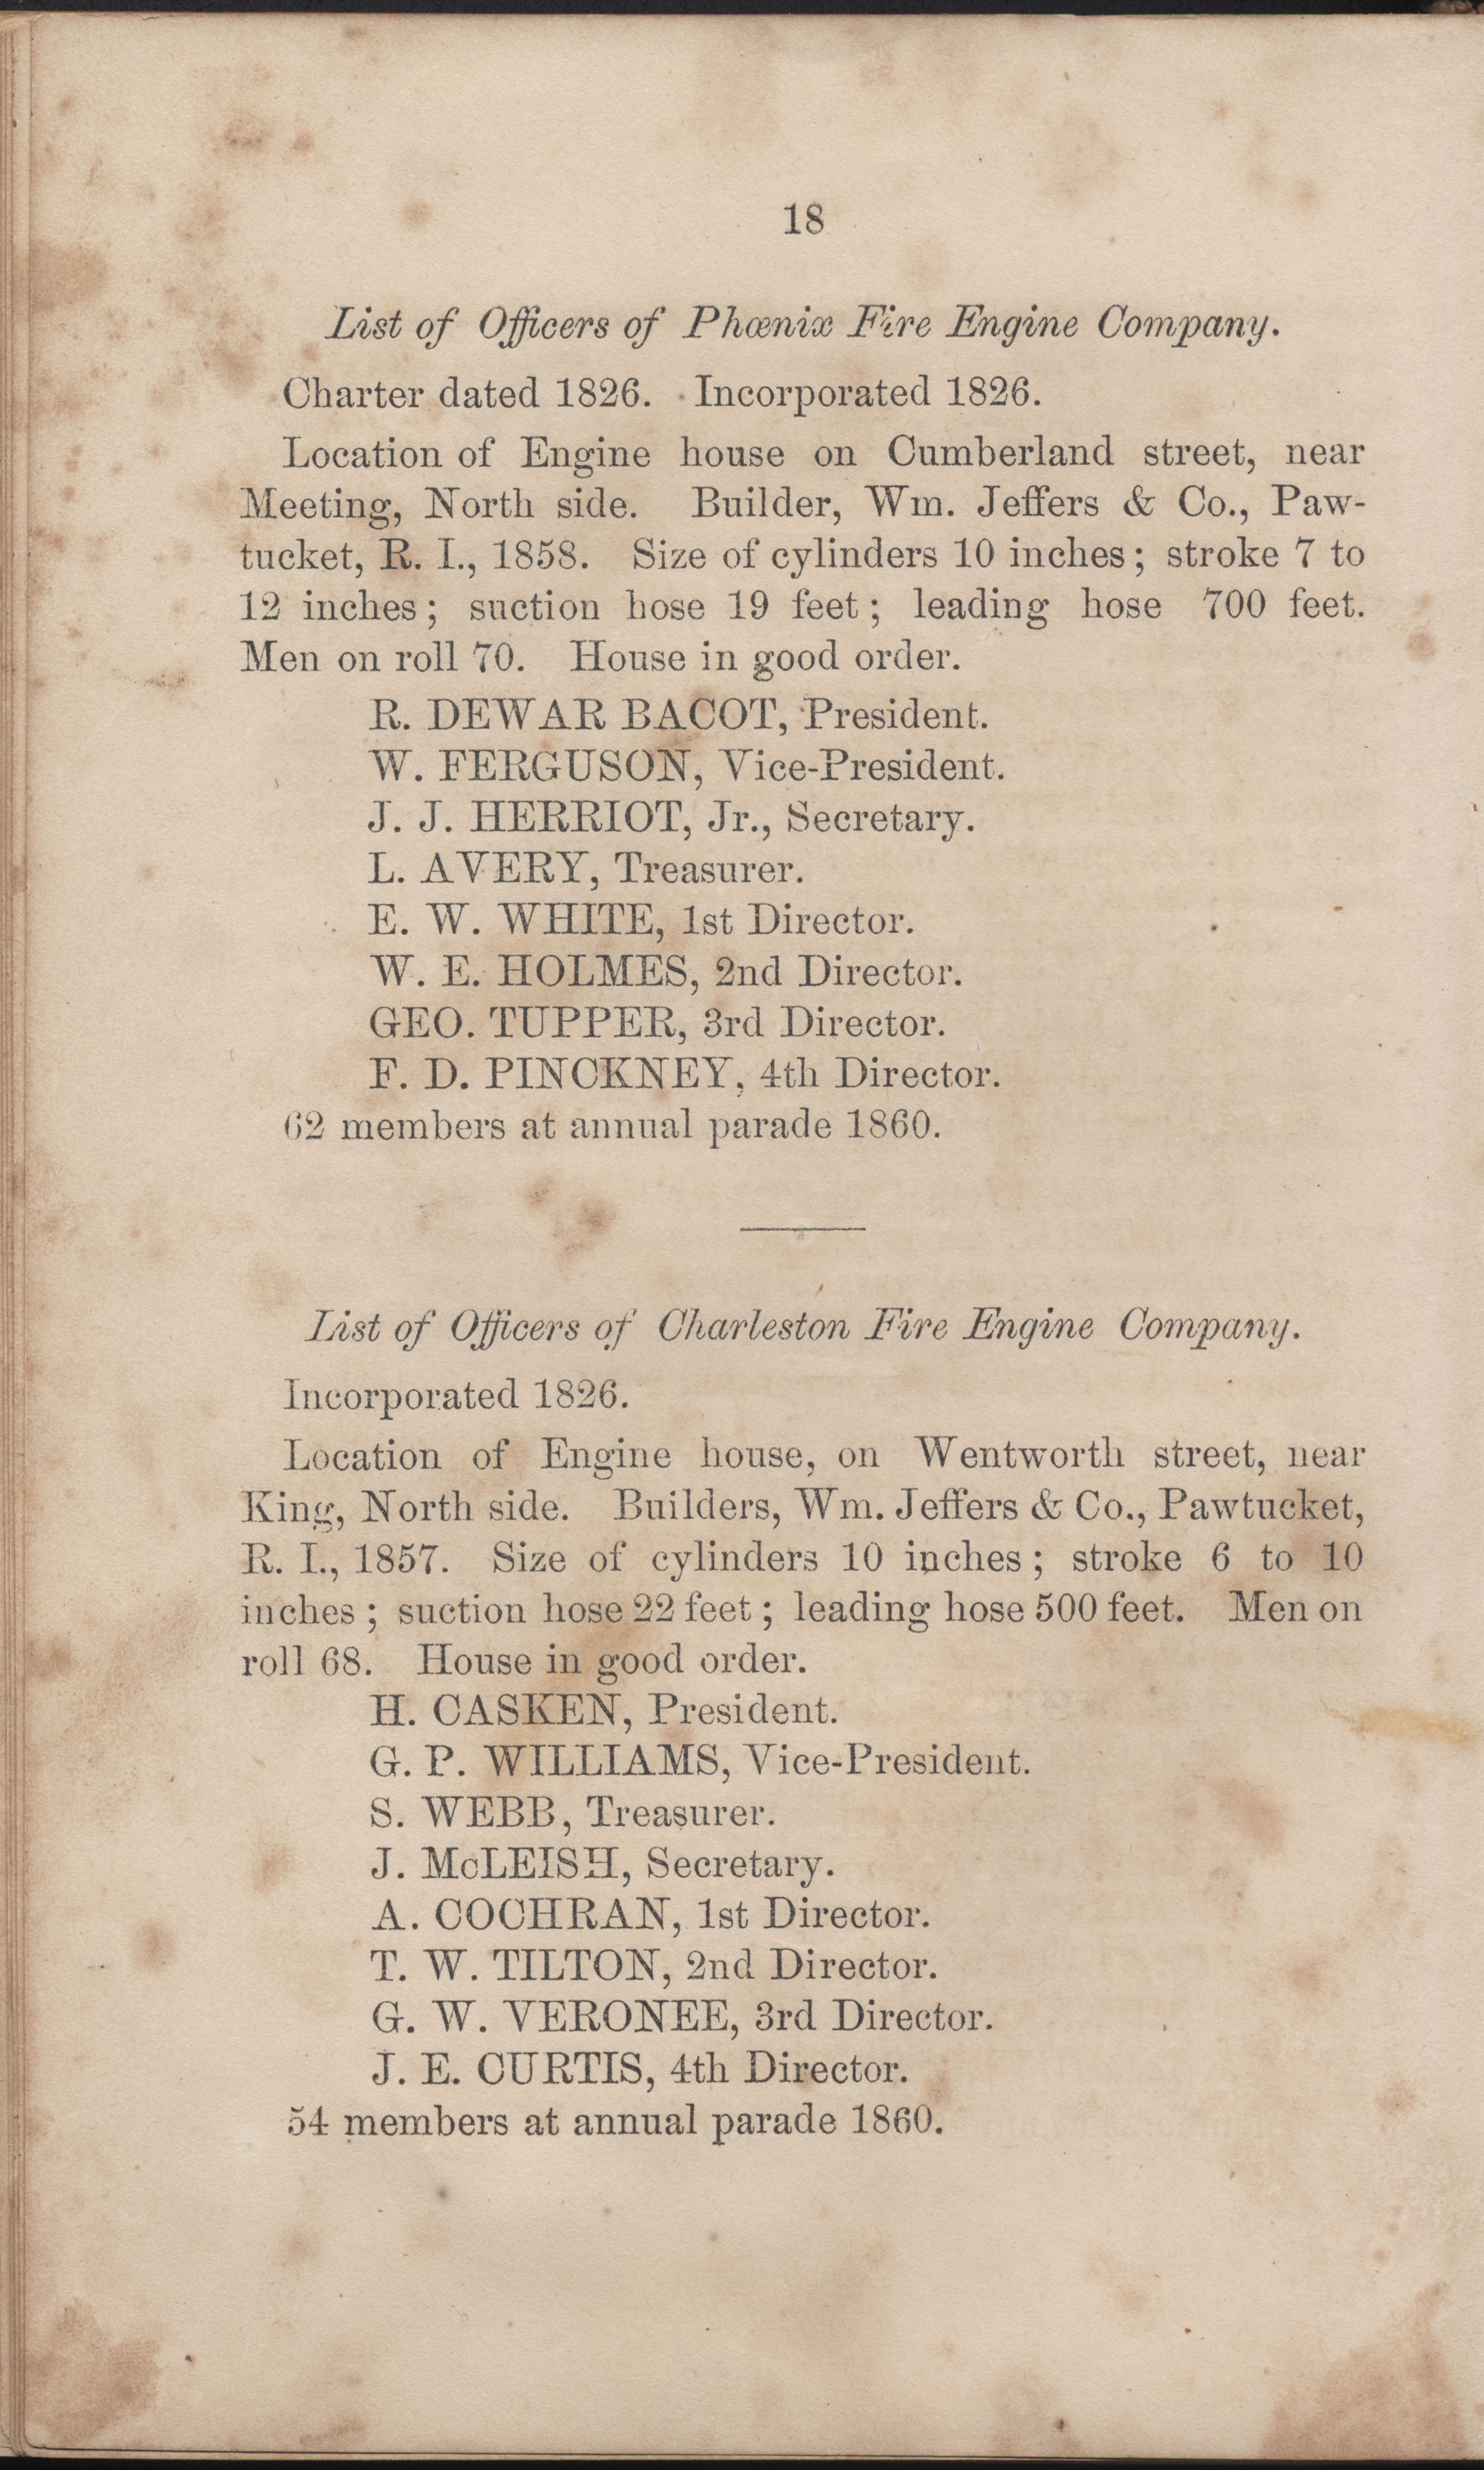 Annual Report of the Chief of the Fire Department of the City of Charleston, page 44